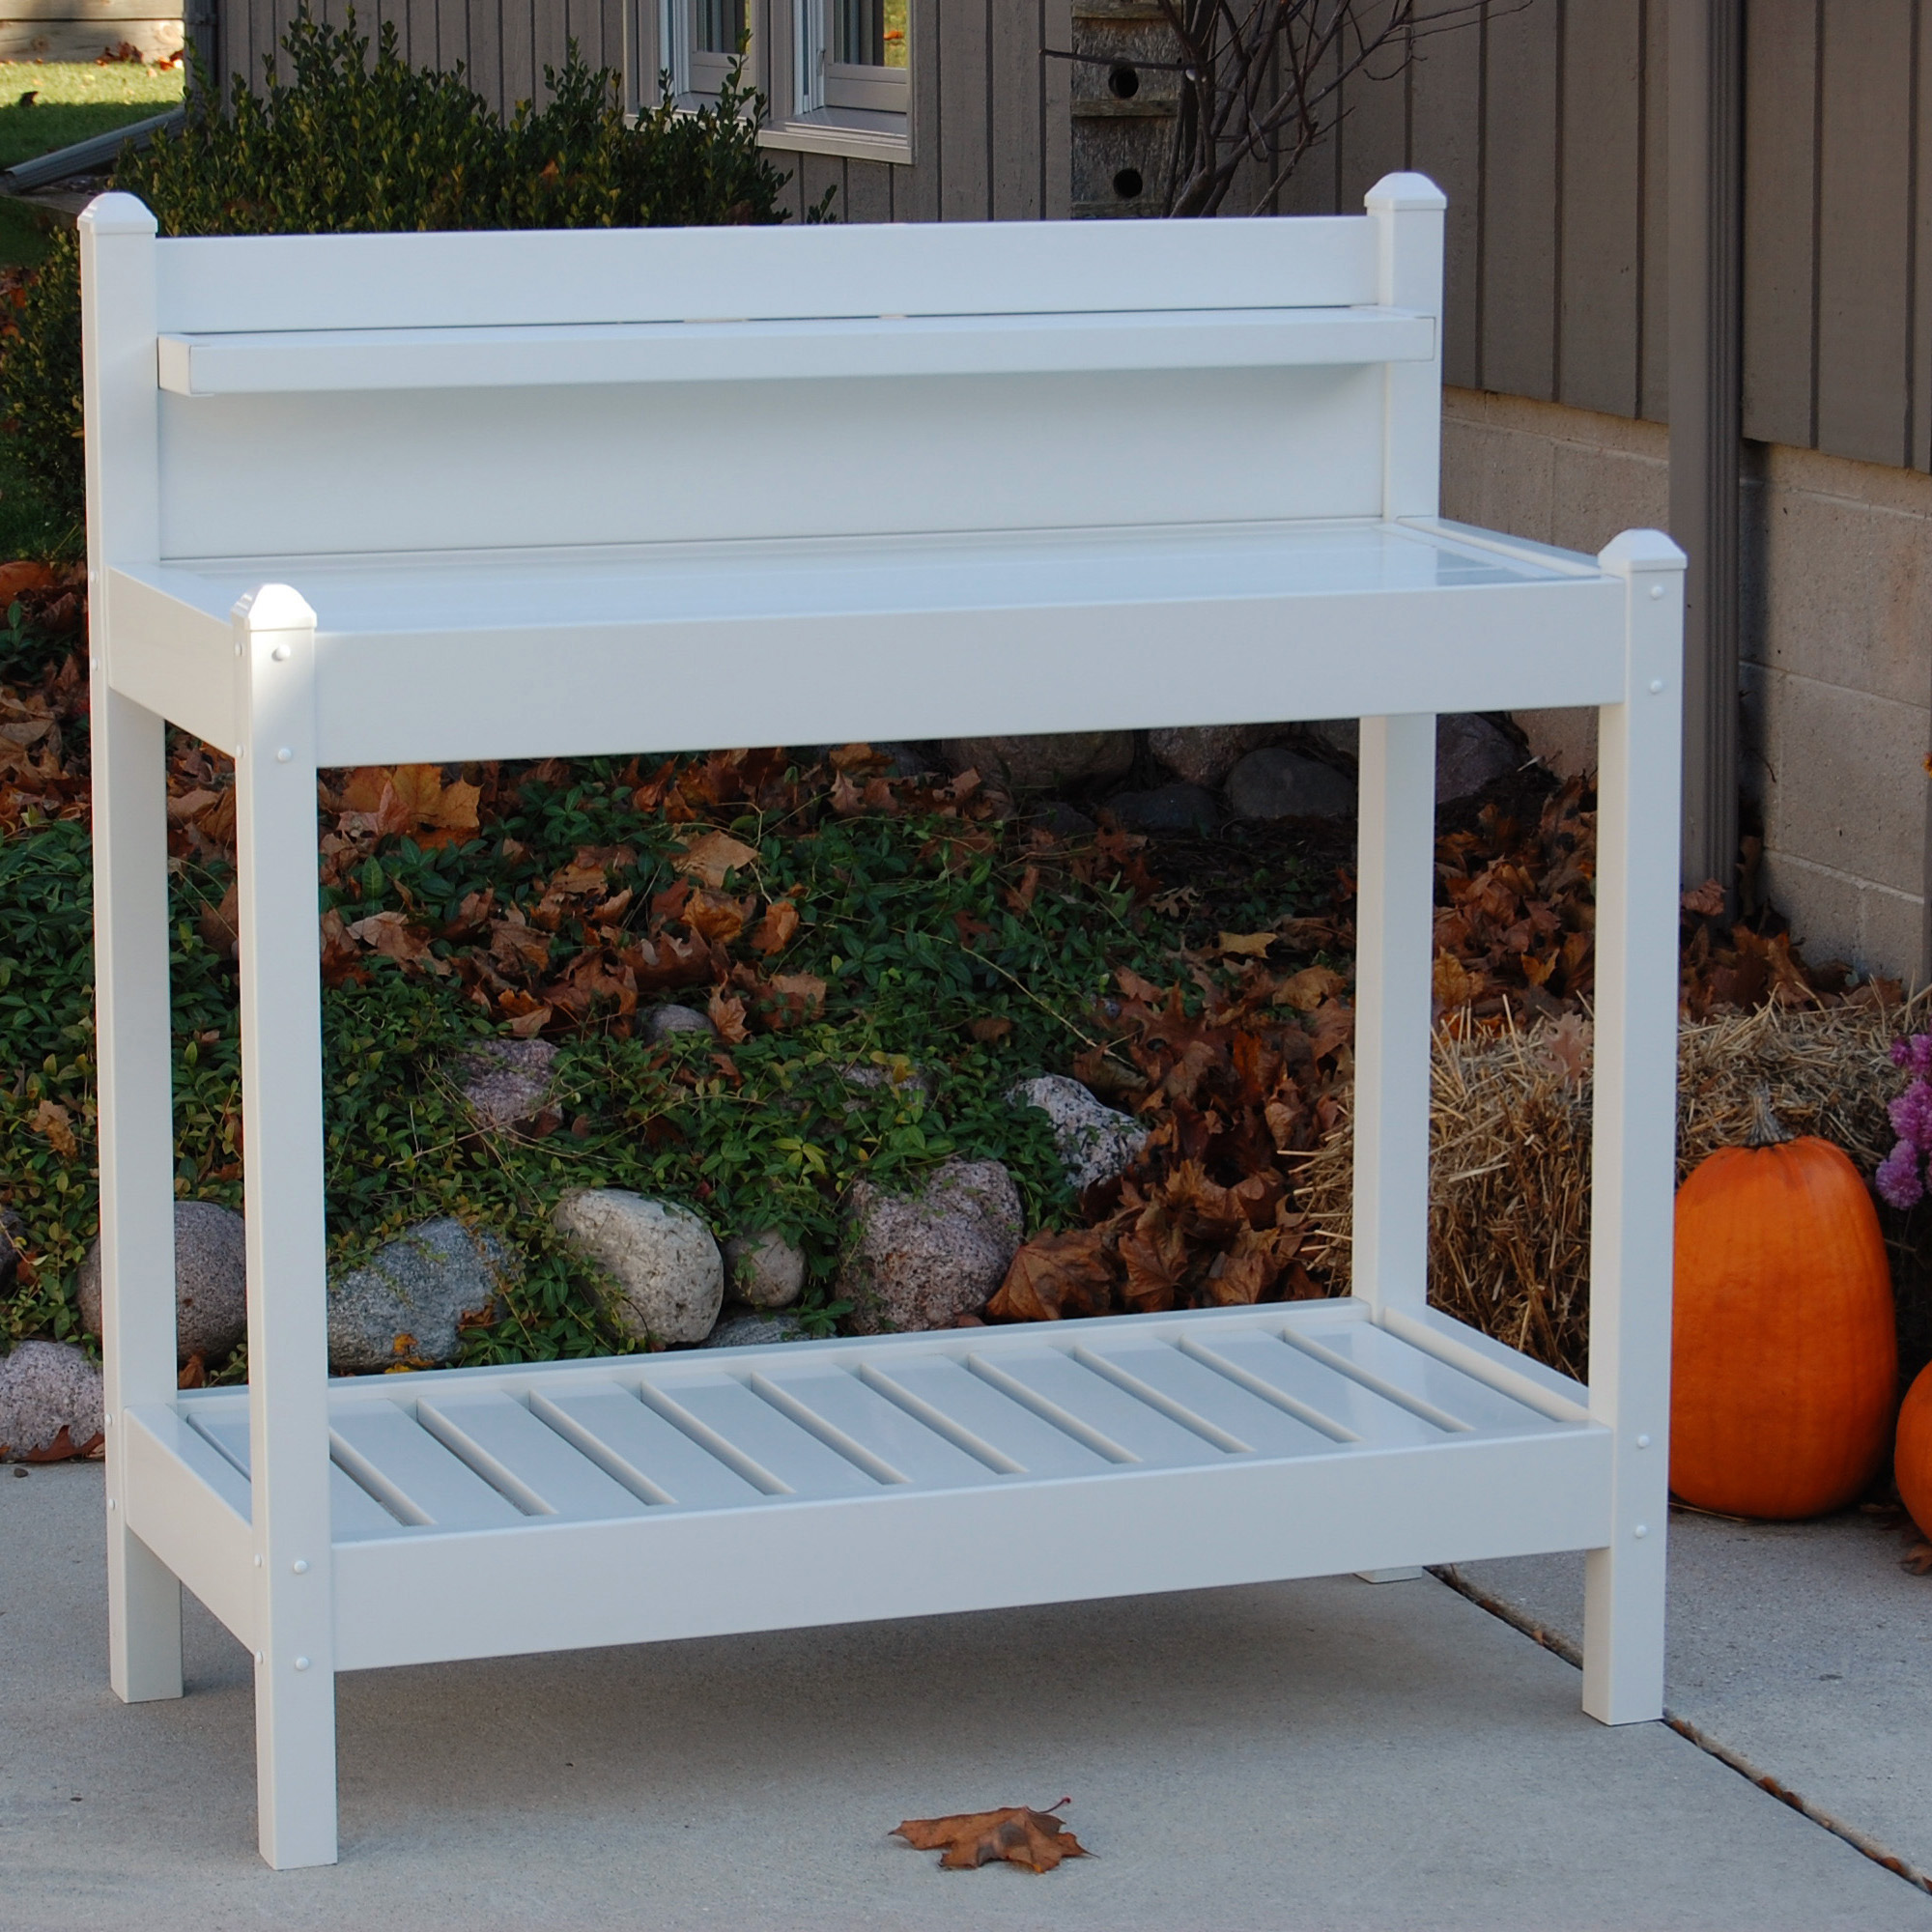 Dura trel vinyl greenfield potting bench white potting benches at hayneedle Outdoor potting bench